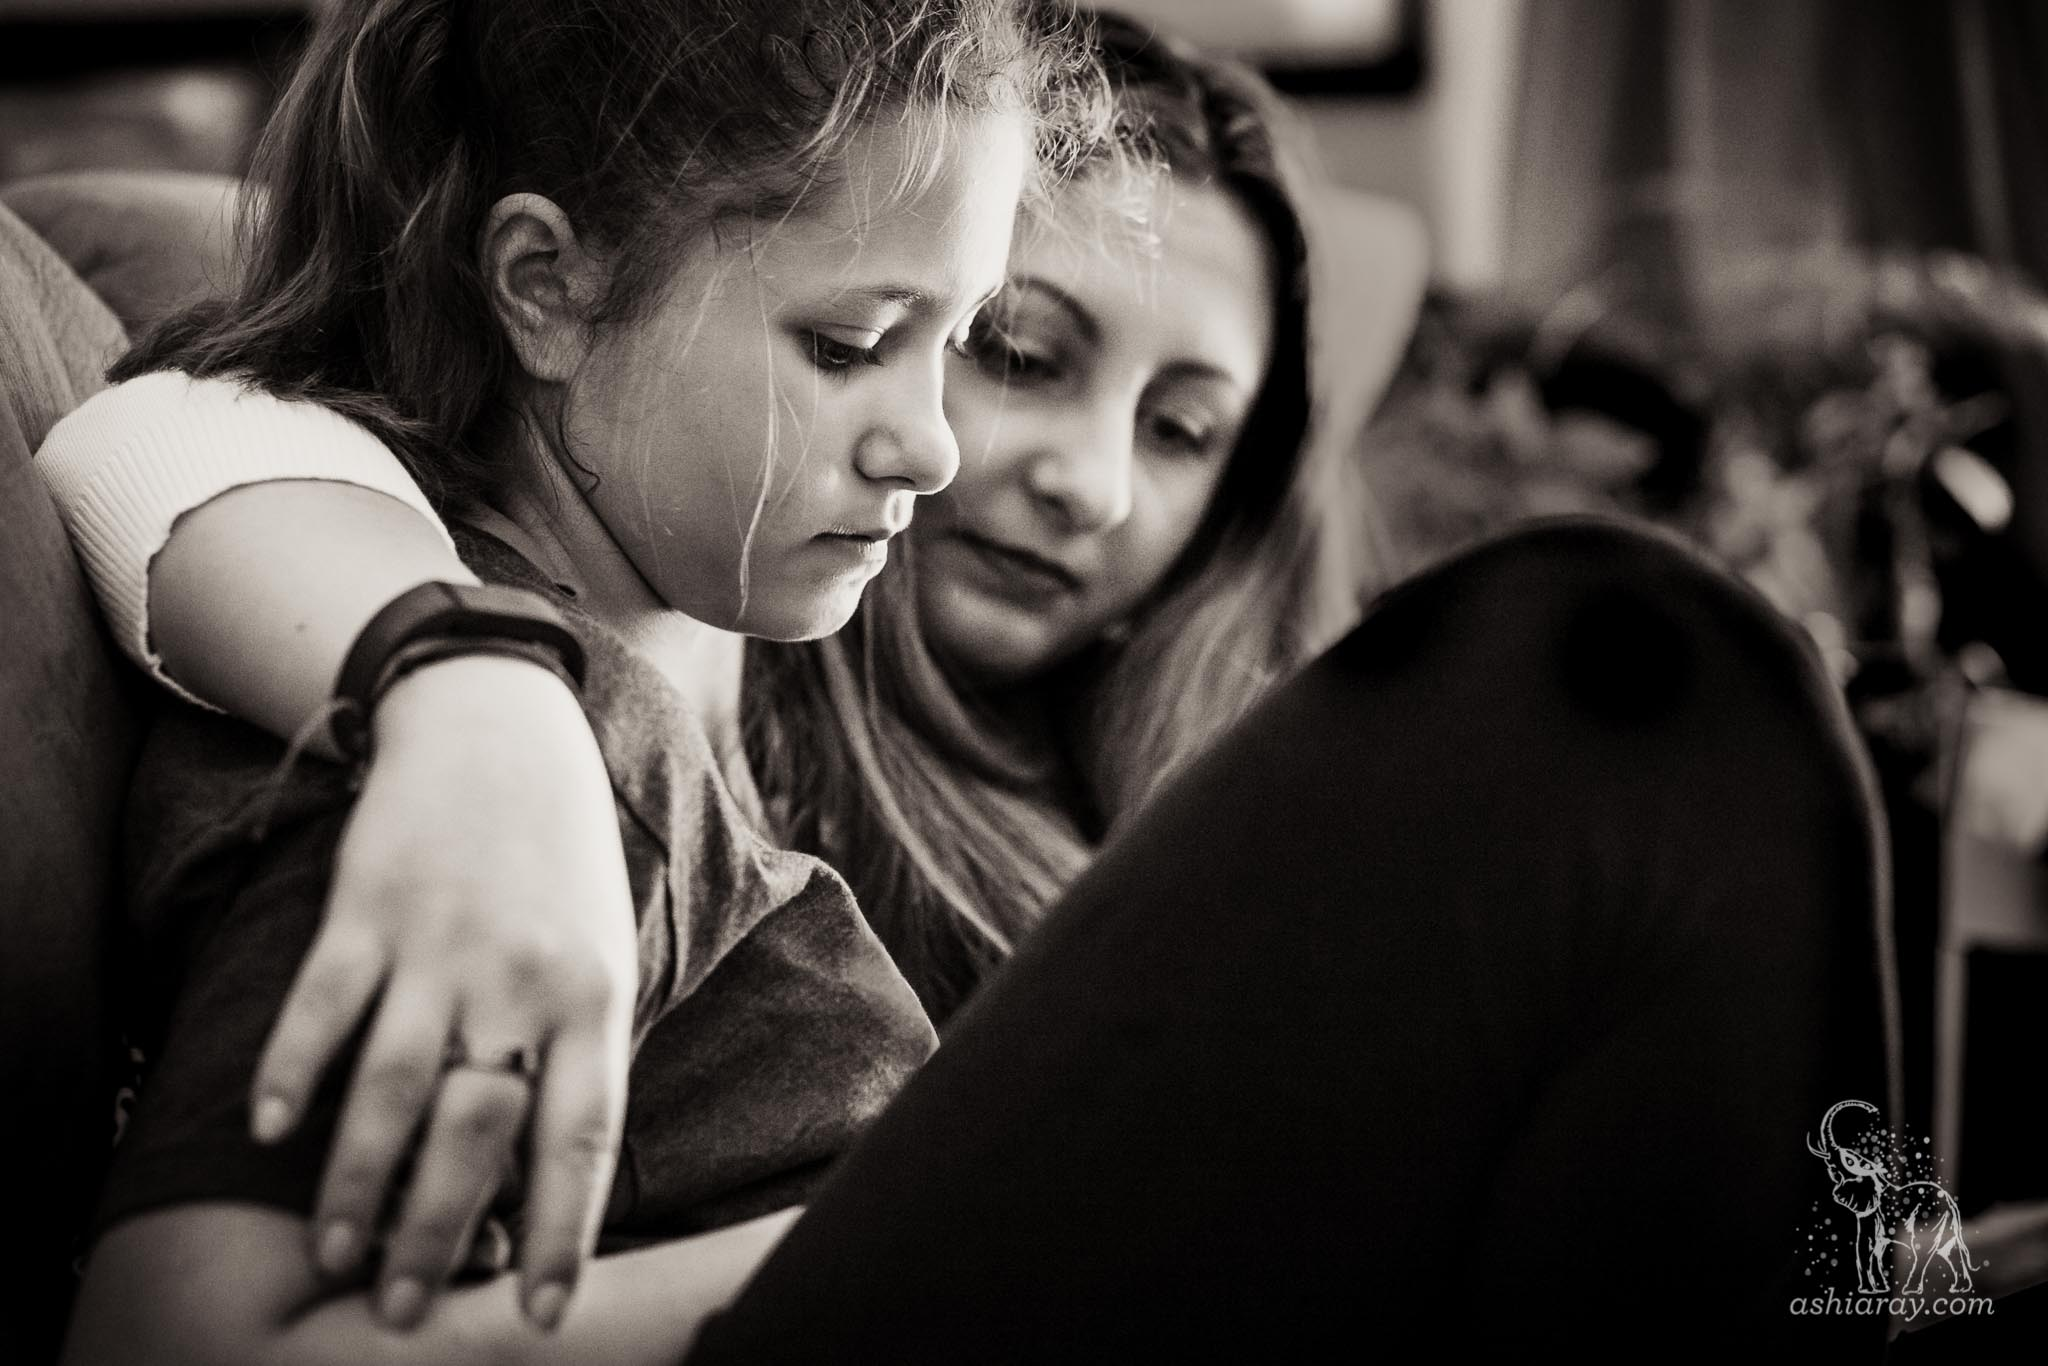 Mother and daughter looking at a phone